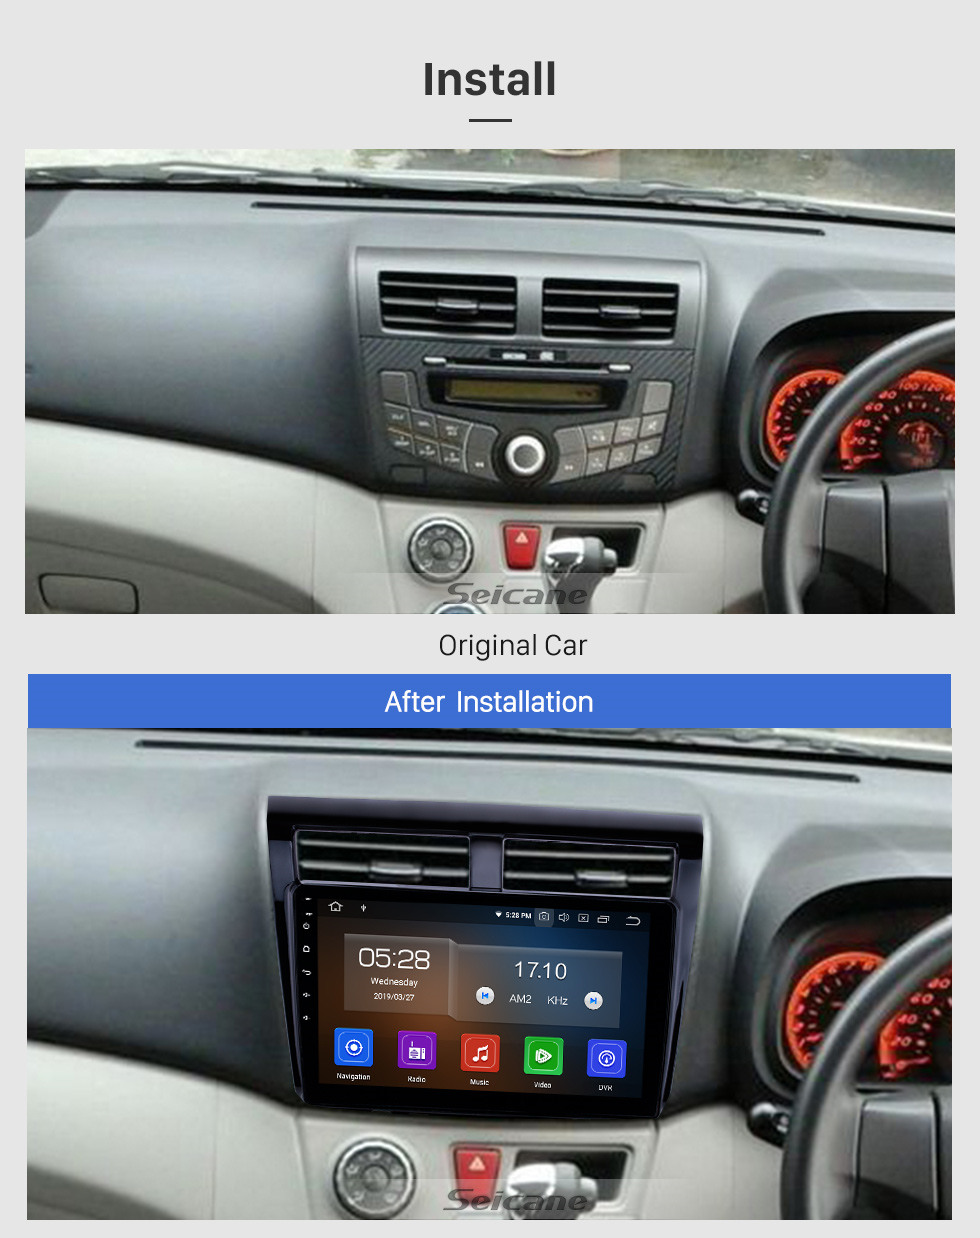 Seicane 10.1 inch Android 10.0 GPS Navigation Radio for 2012 Proton Myvi Bluetooth Wifi HD Touchscreen Carplay support DAB+ Steering Wheel Control DVR